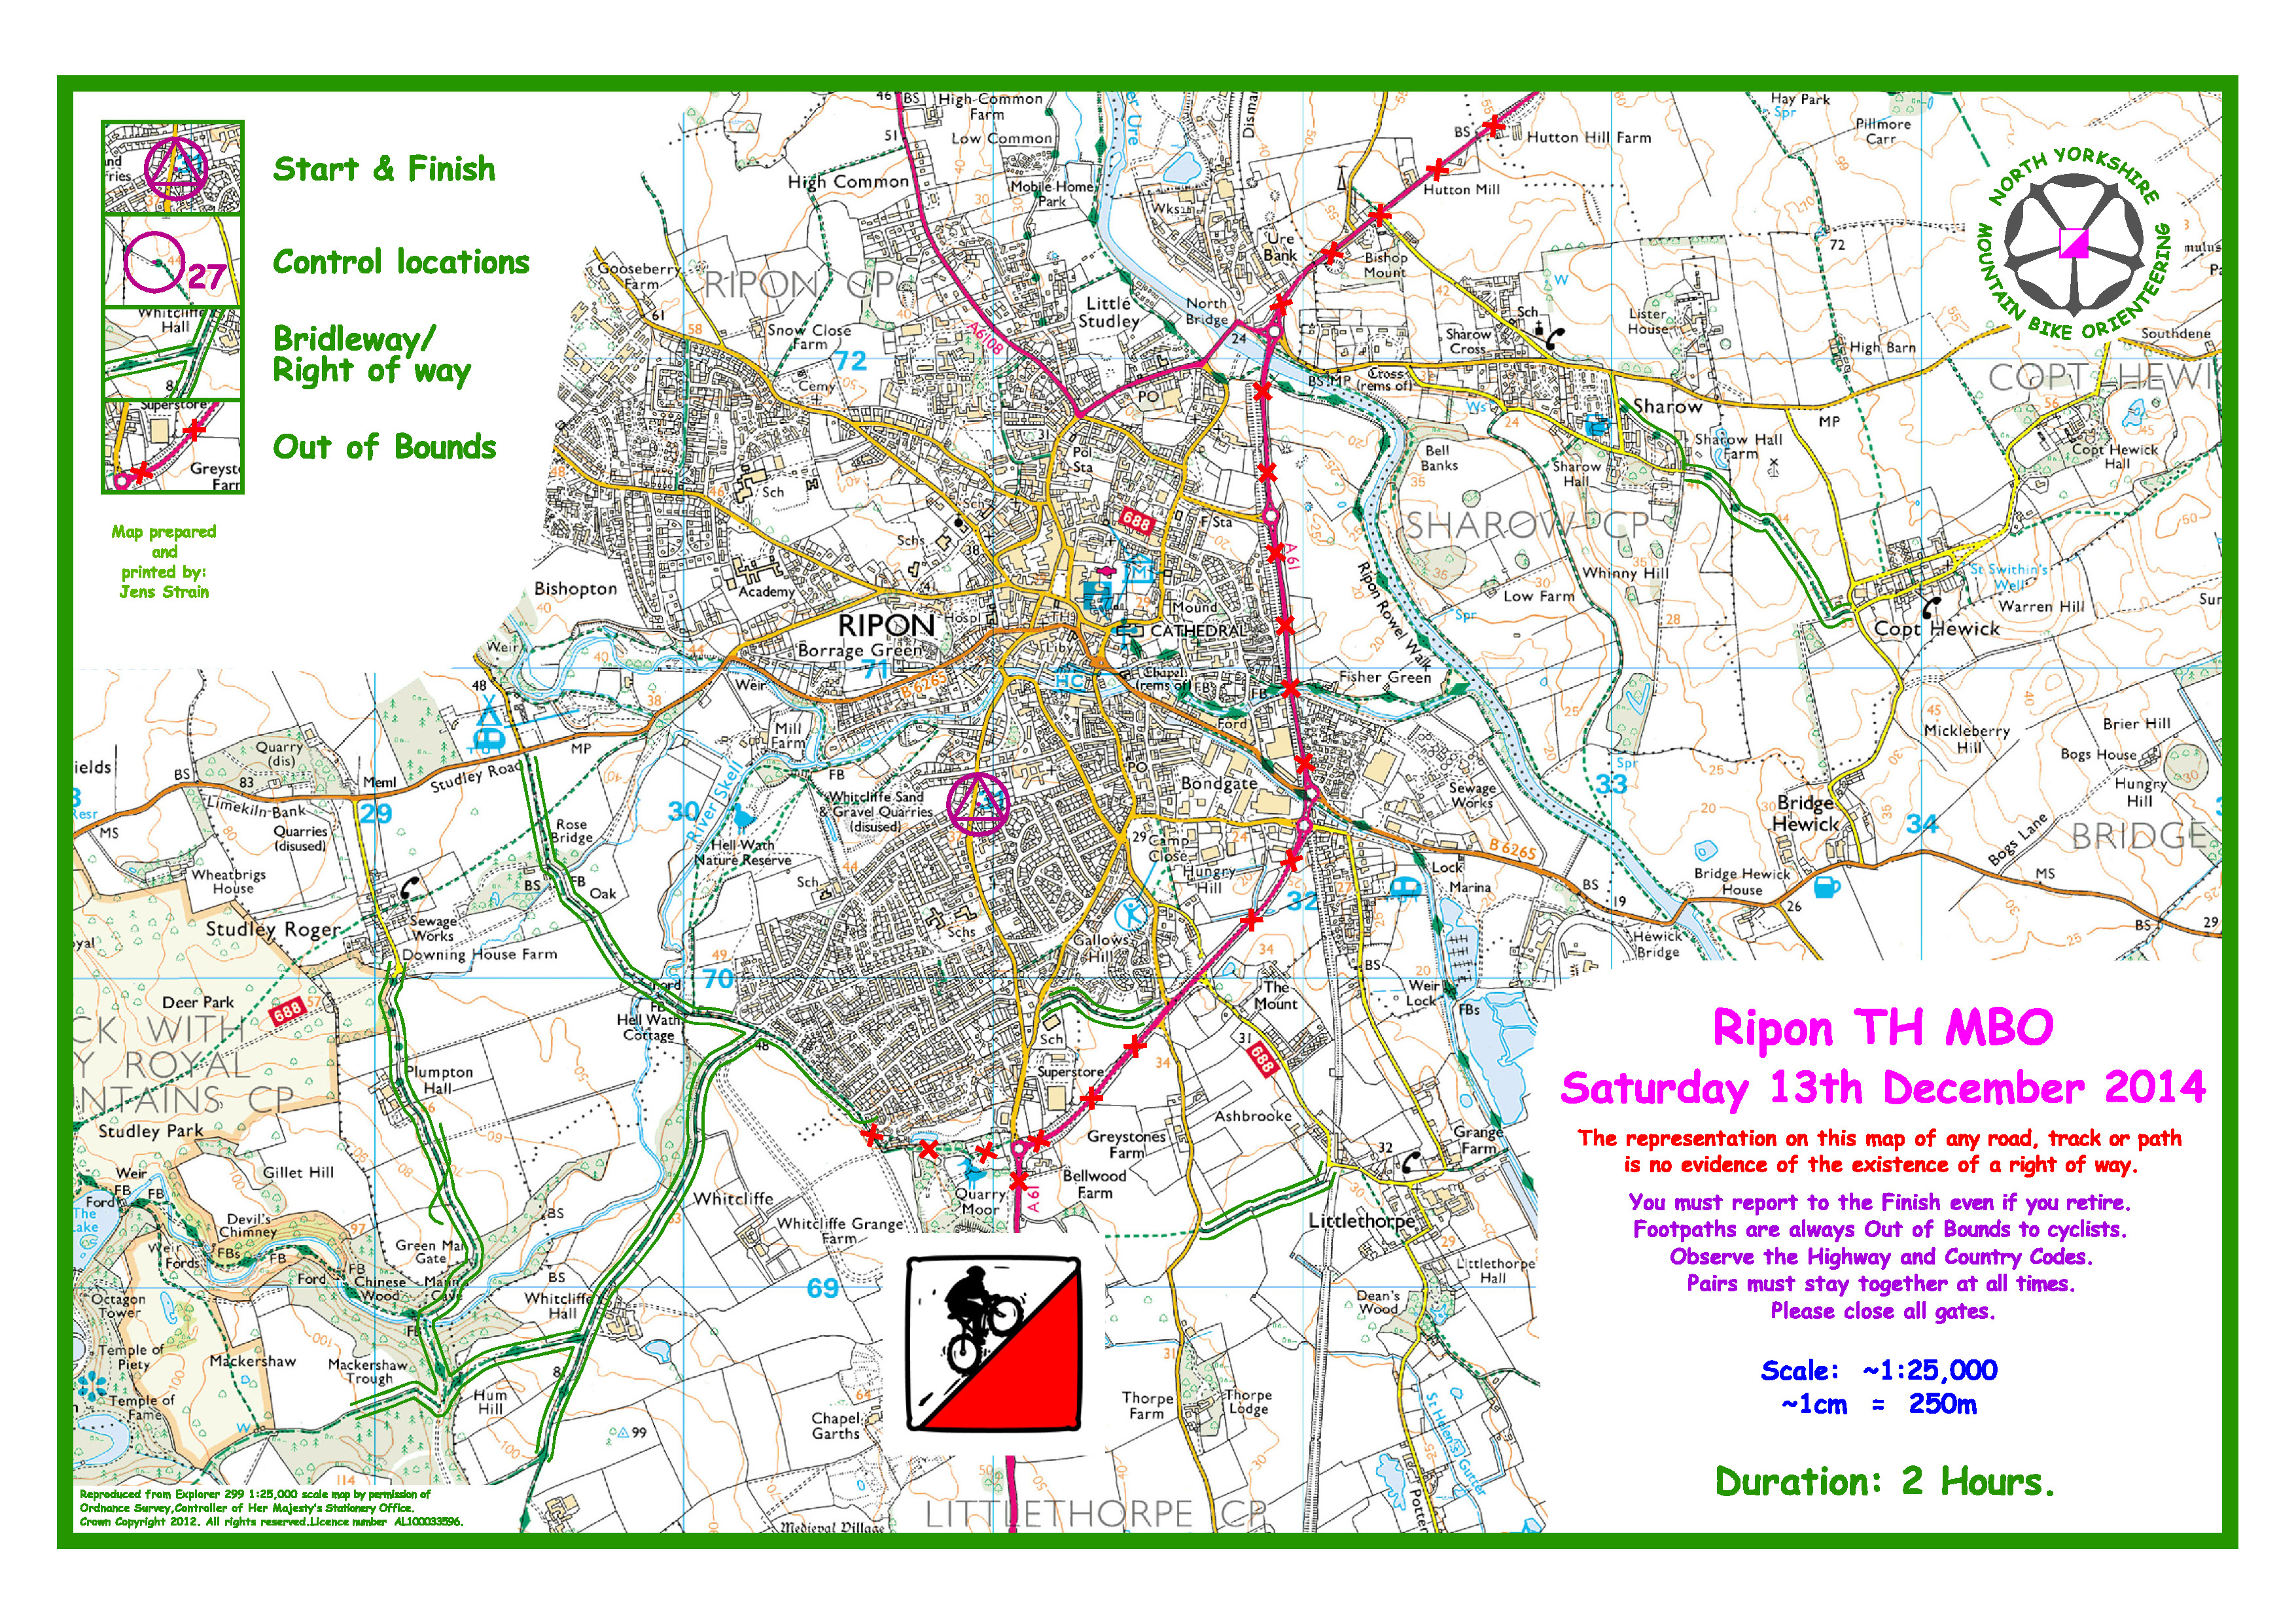 Ripon – Saay 13 December – Map without controls | nymbo ... on